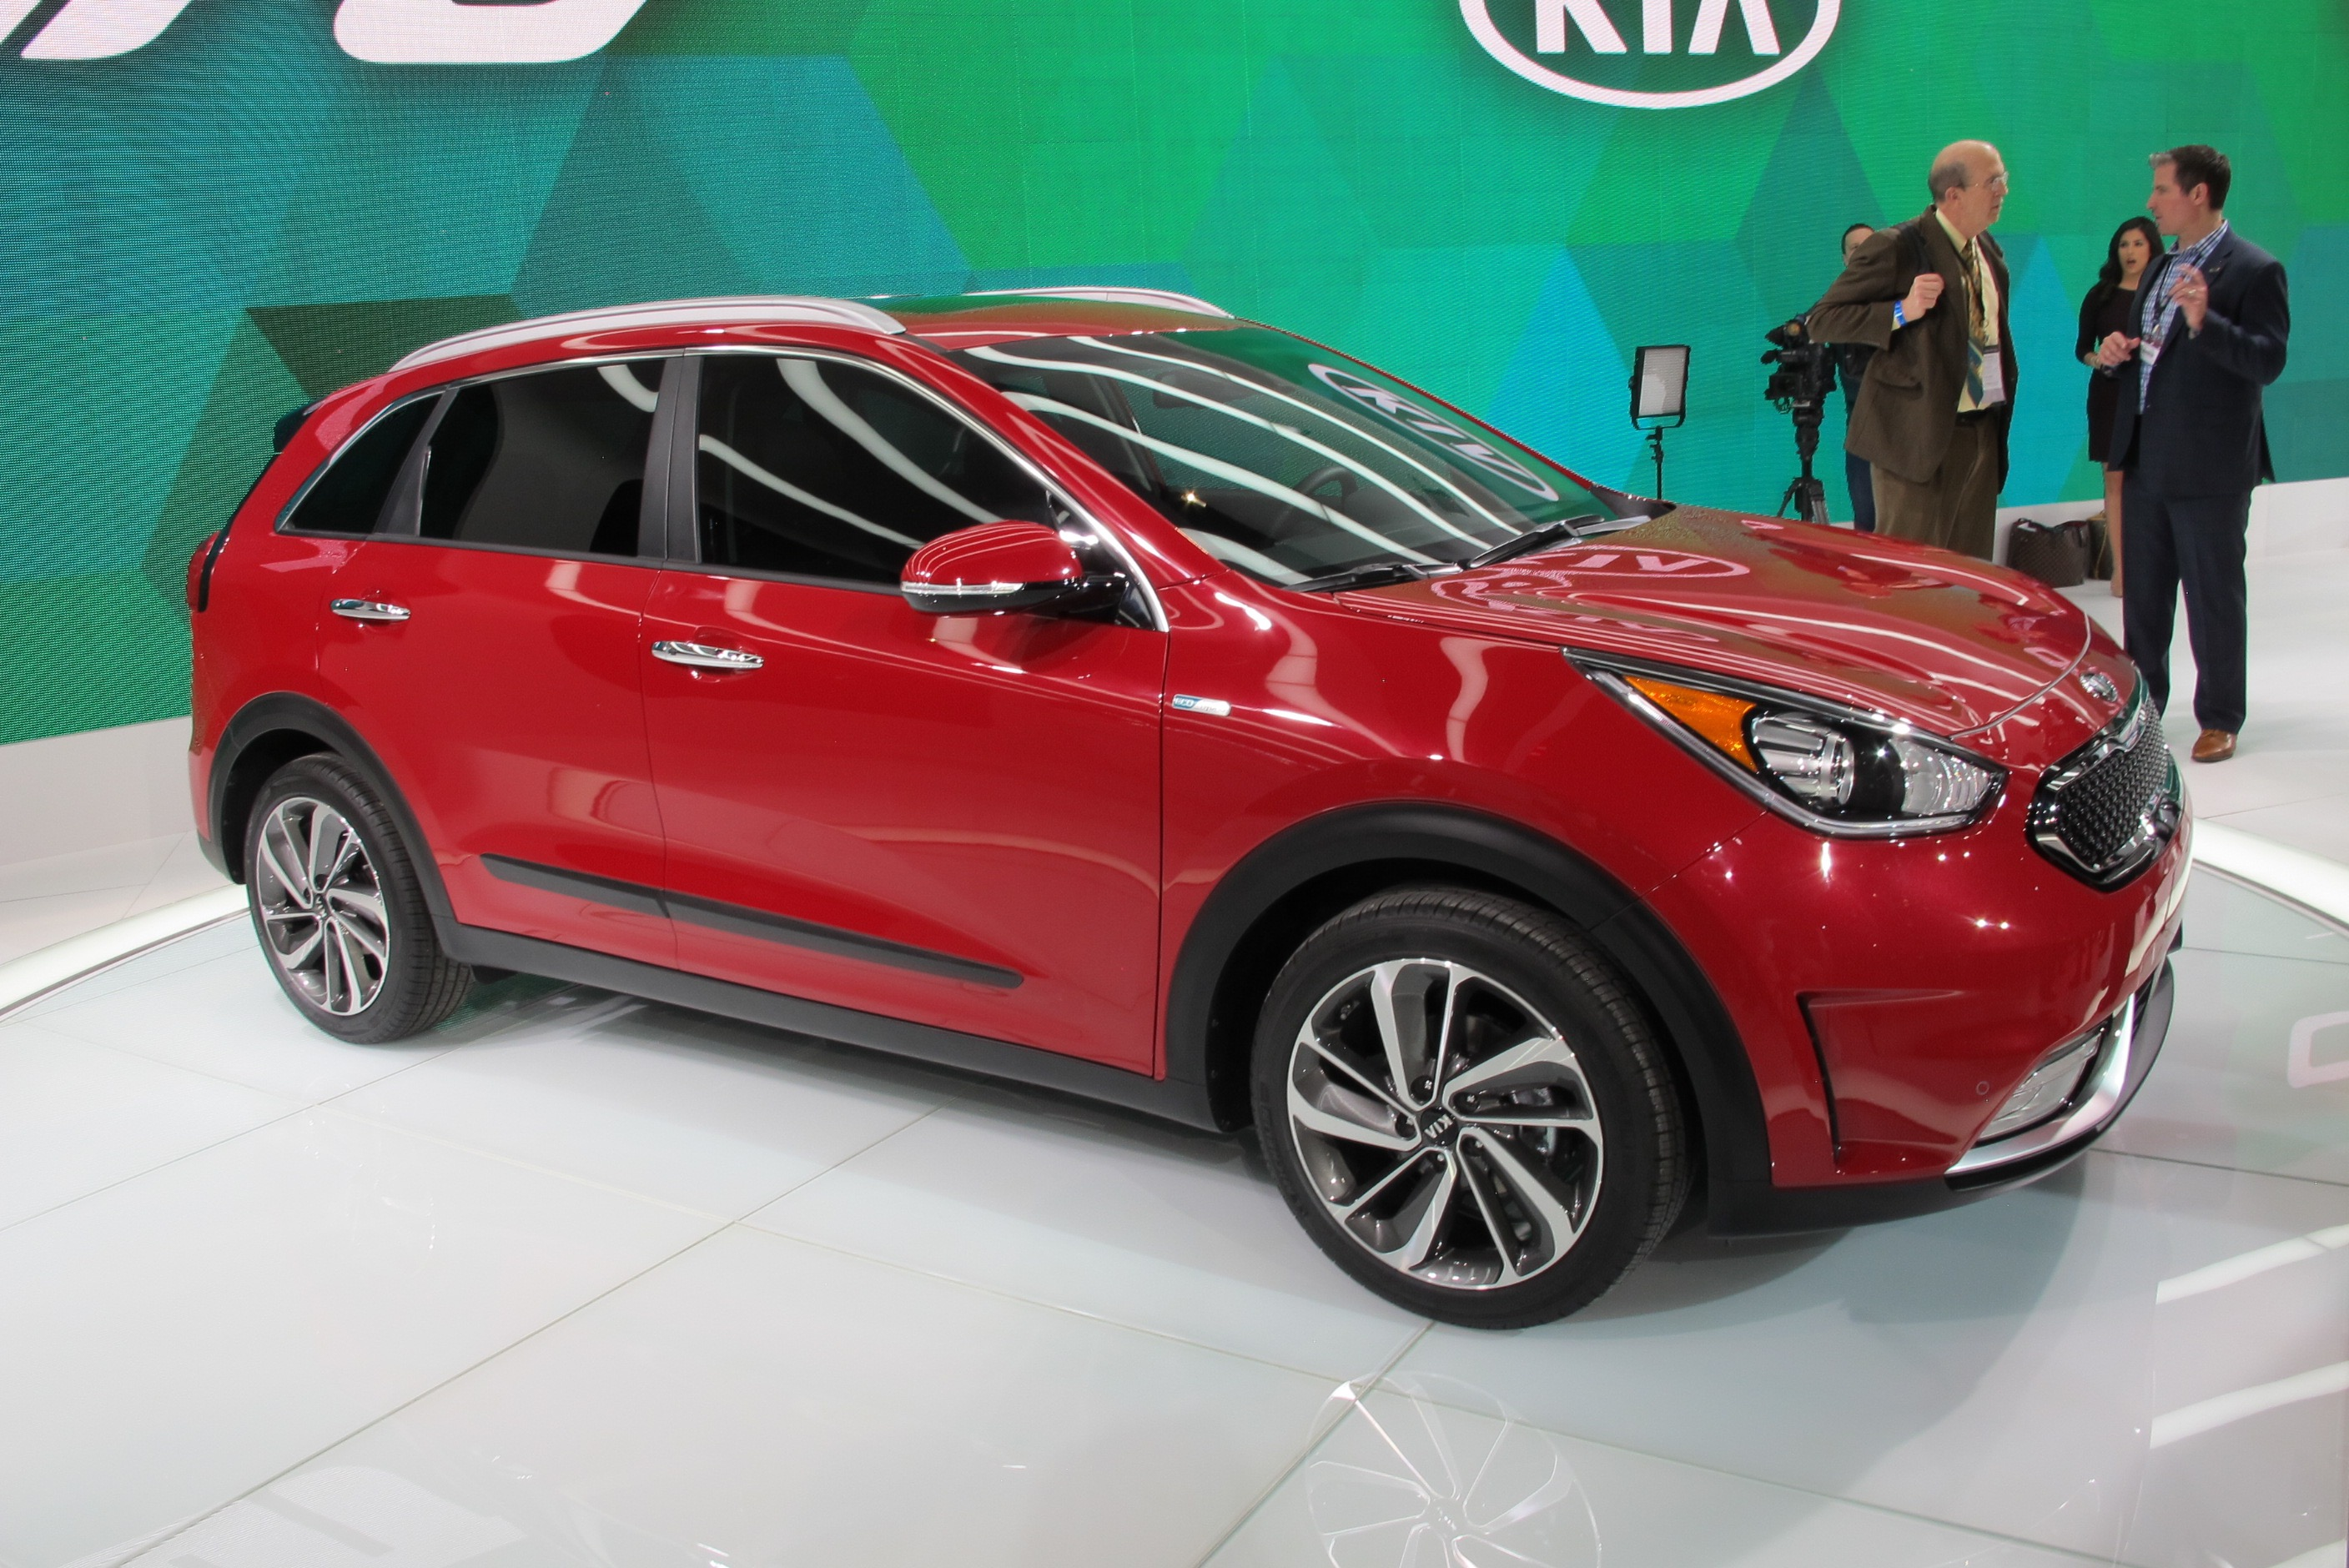 kia niro hybrid tesla model 3 date rav4 hybrid drive. Black Bedroom Furniture Sets. Home Design Ideas